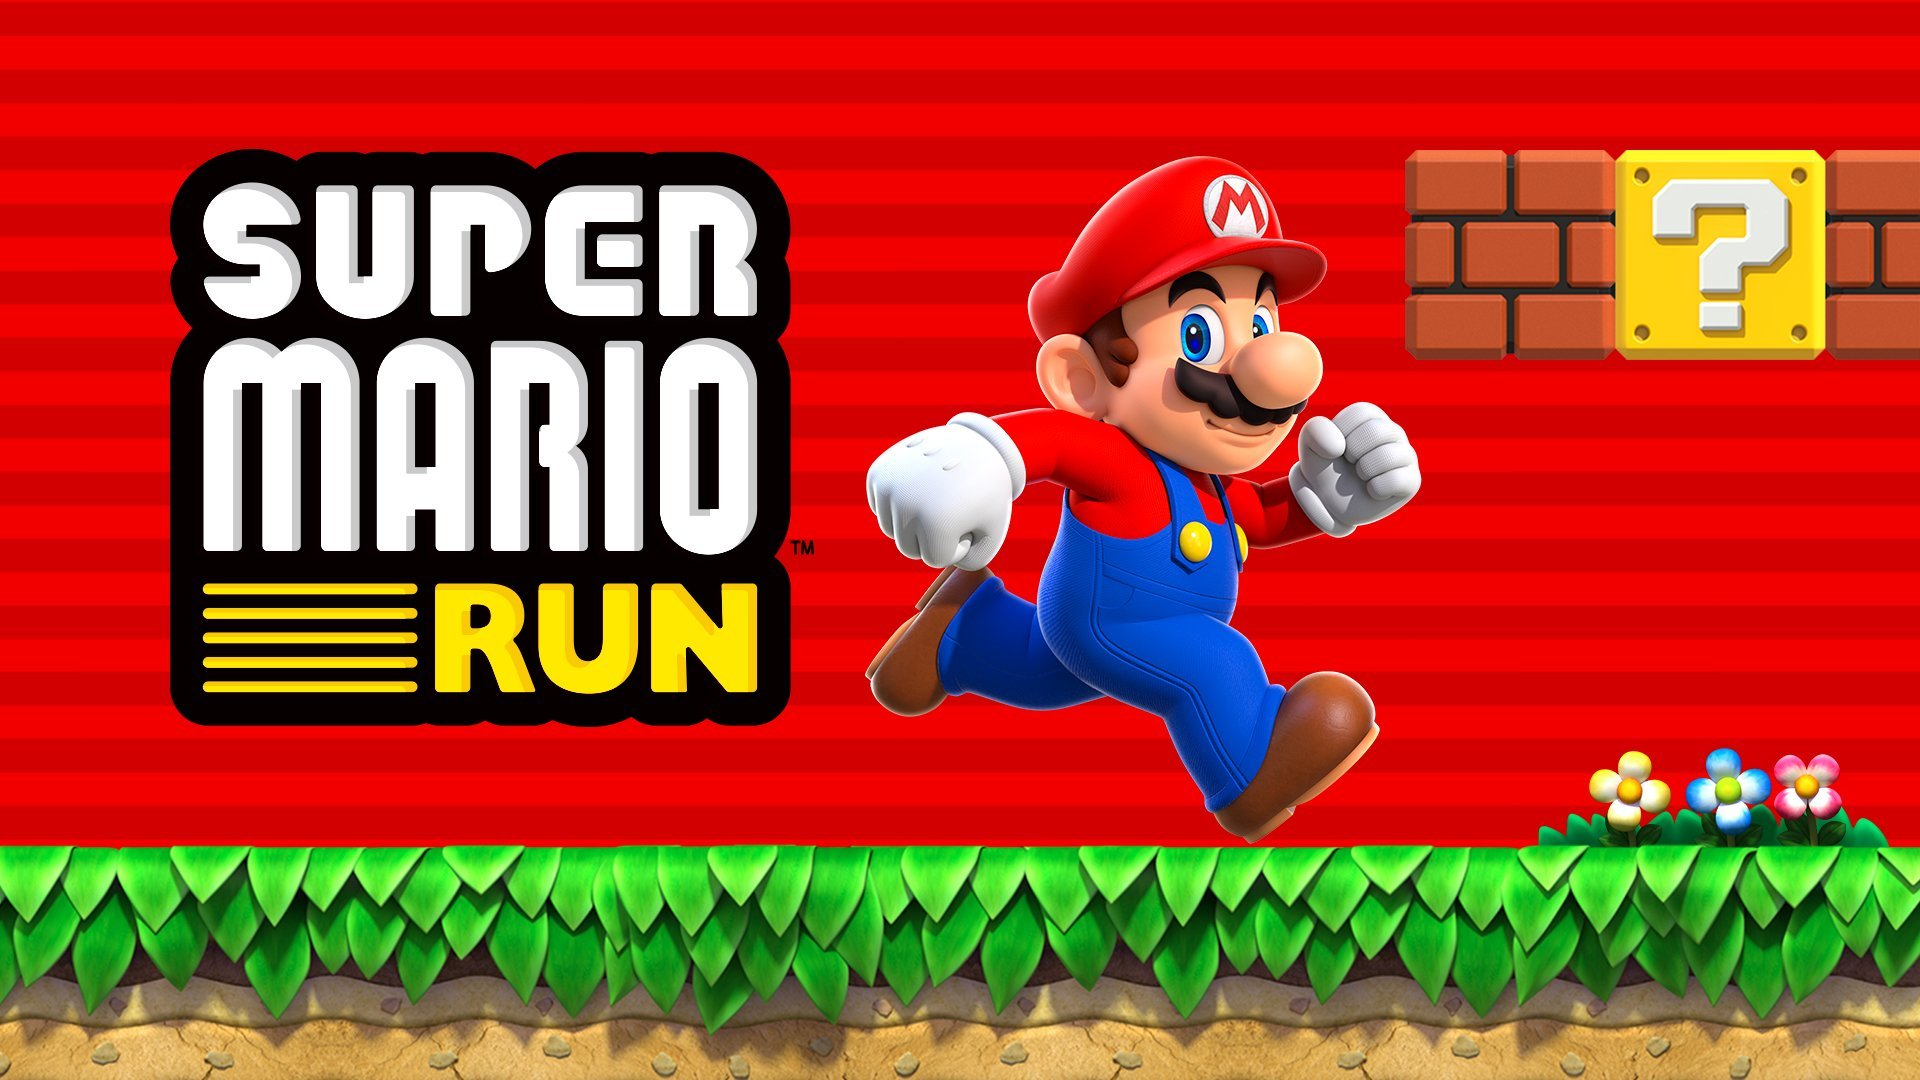 Download Super Mario Run Apk for Free ( iOS and Android )